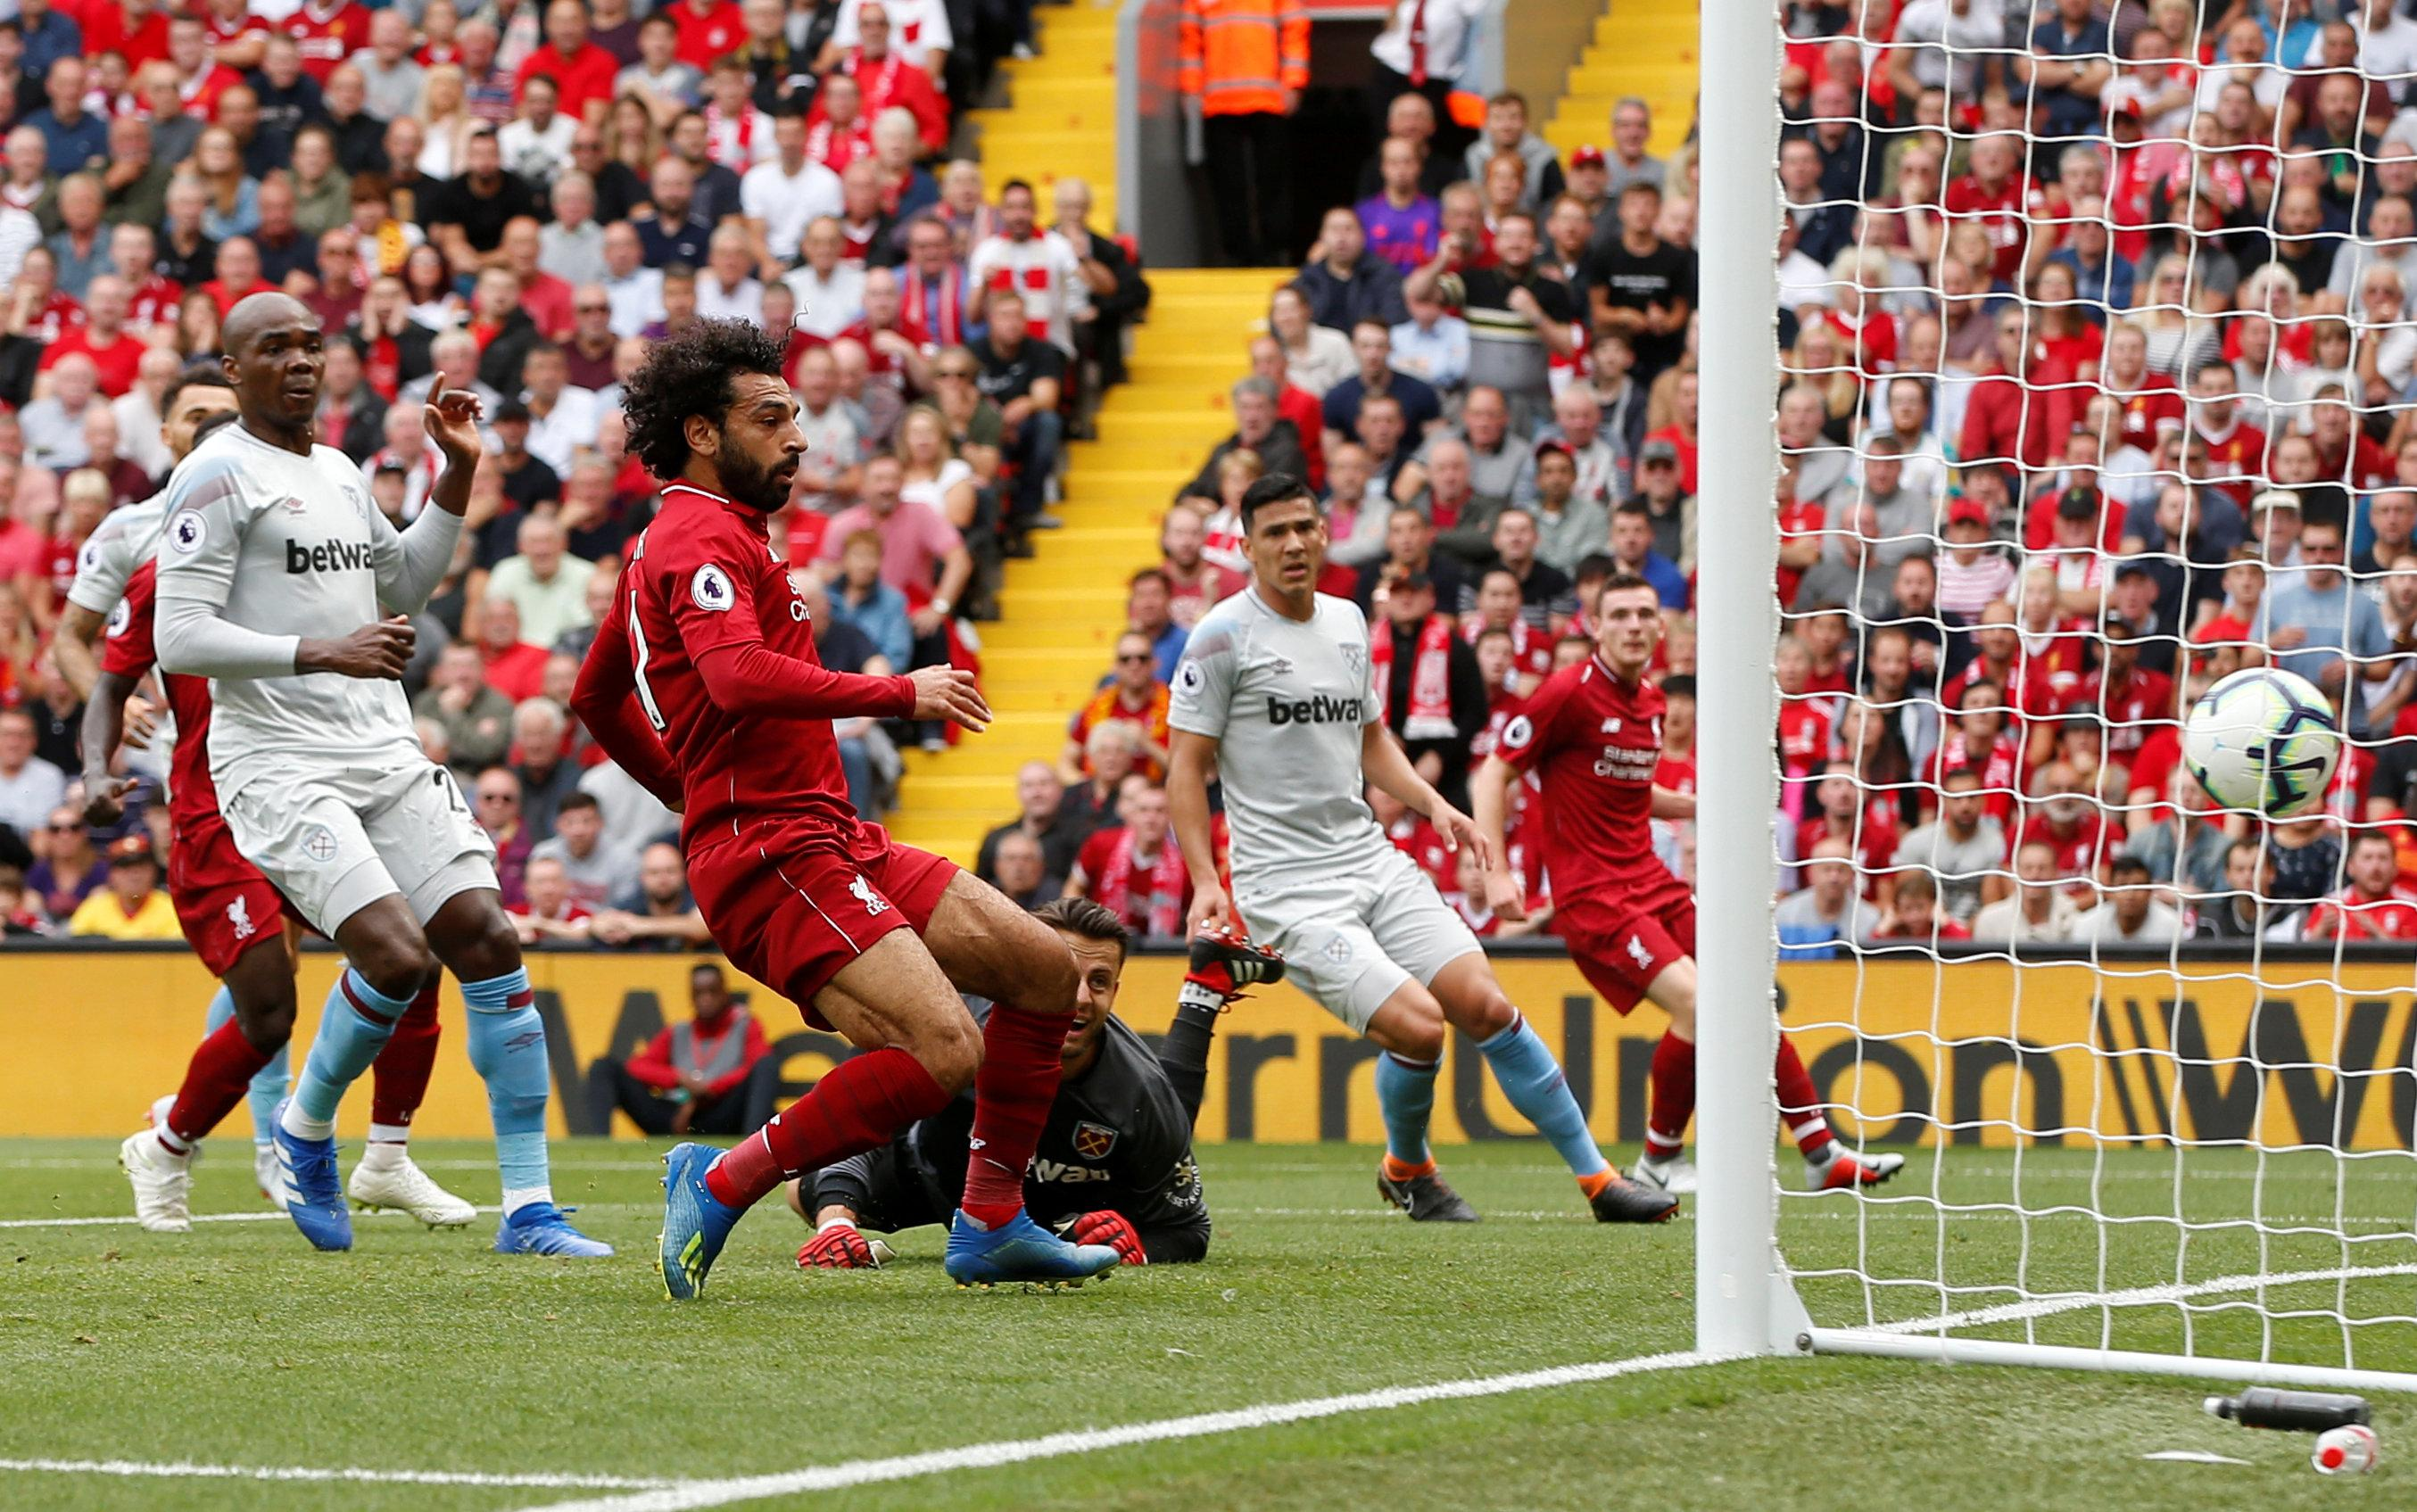 Salah tapped in the first goal of the season for Liverpool